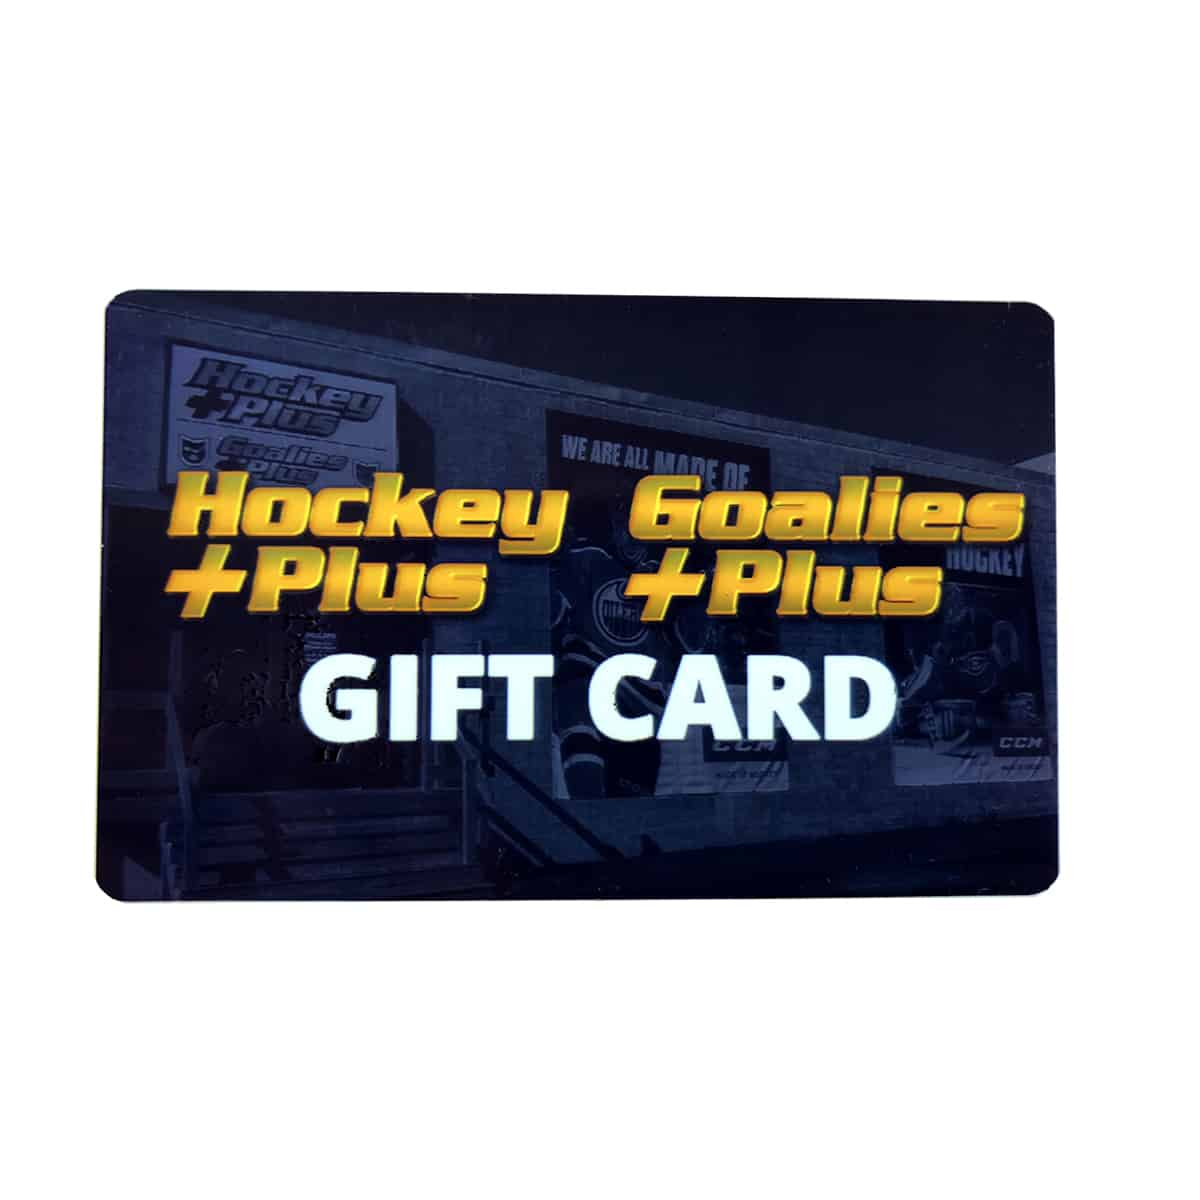 Goalies Plus Gift Card